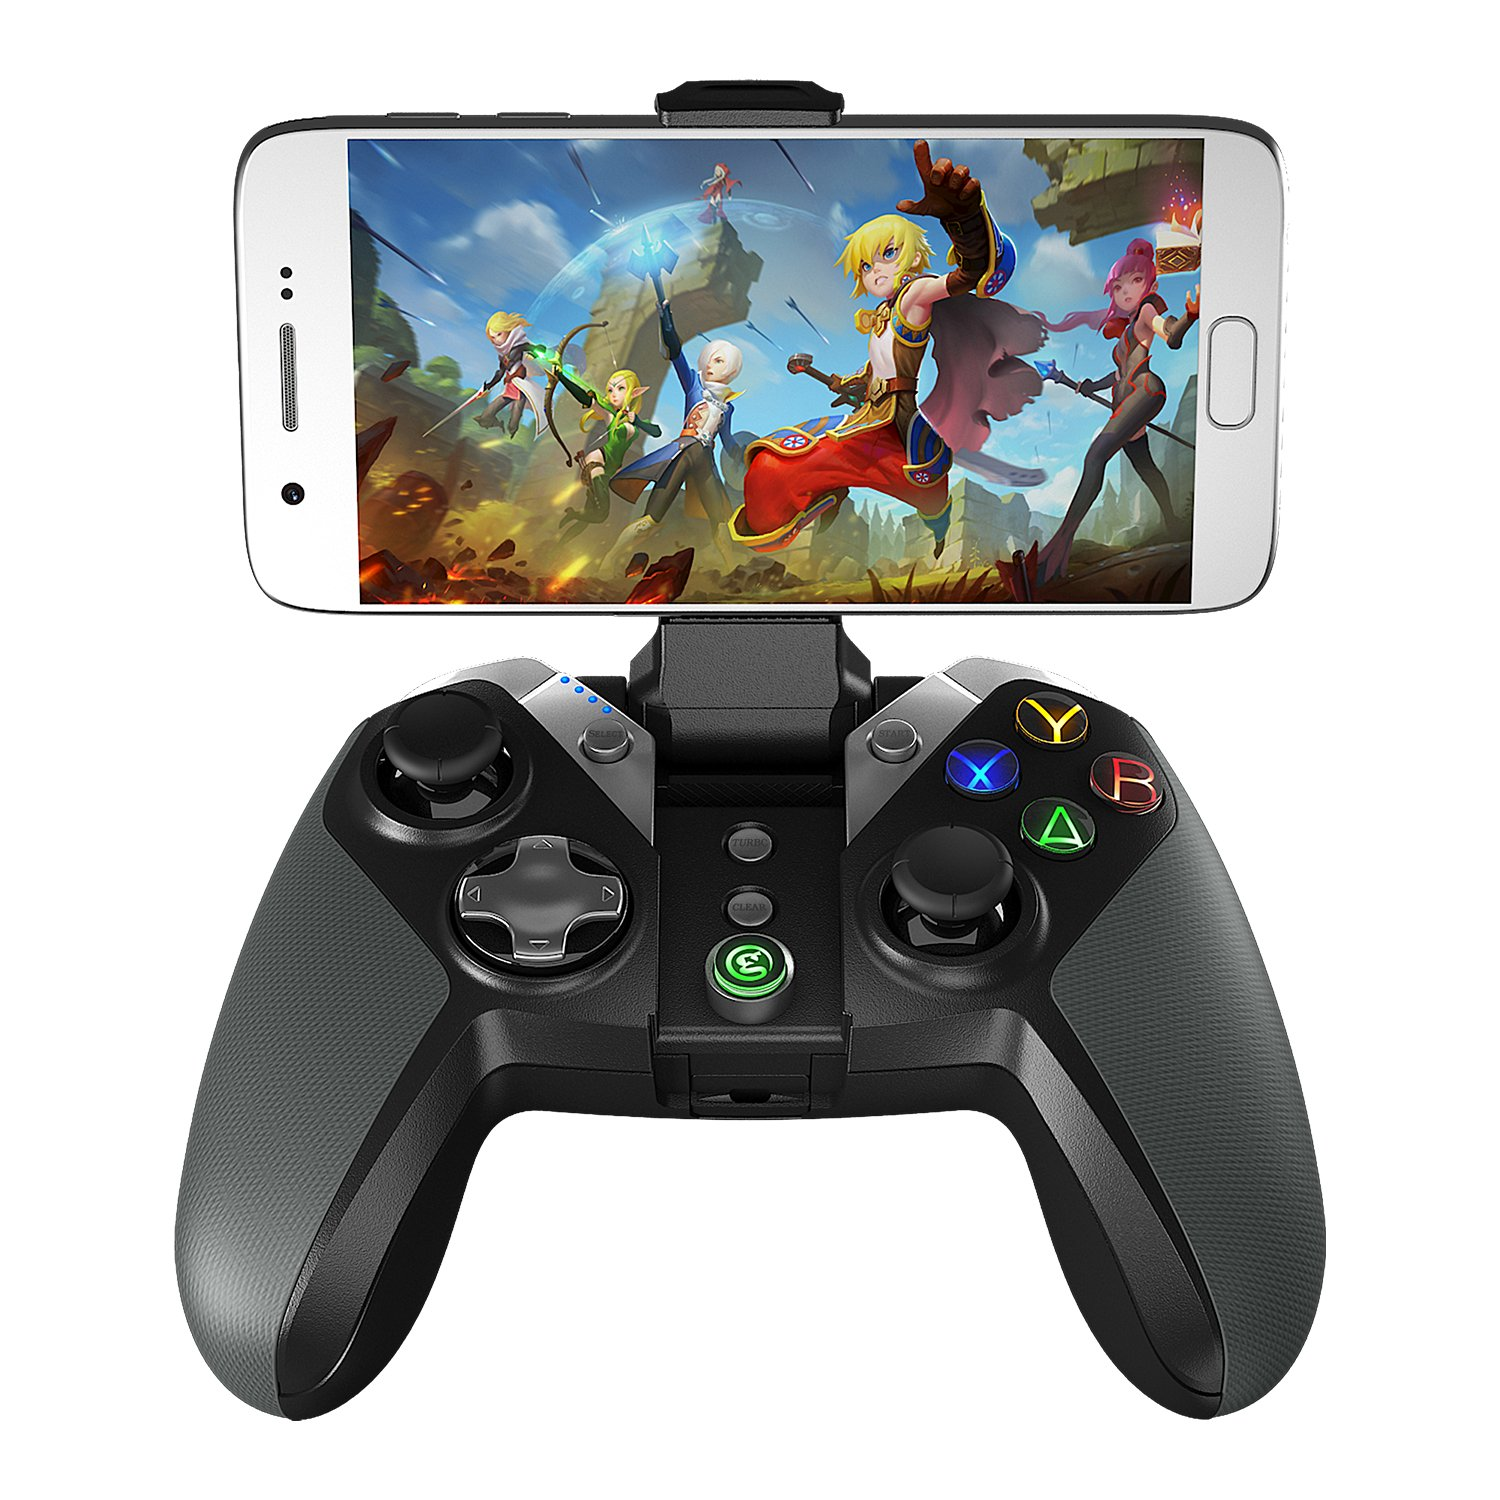 GameSir G4s Bluetooth Wireless Gaming Controller for Android/Windows/VR